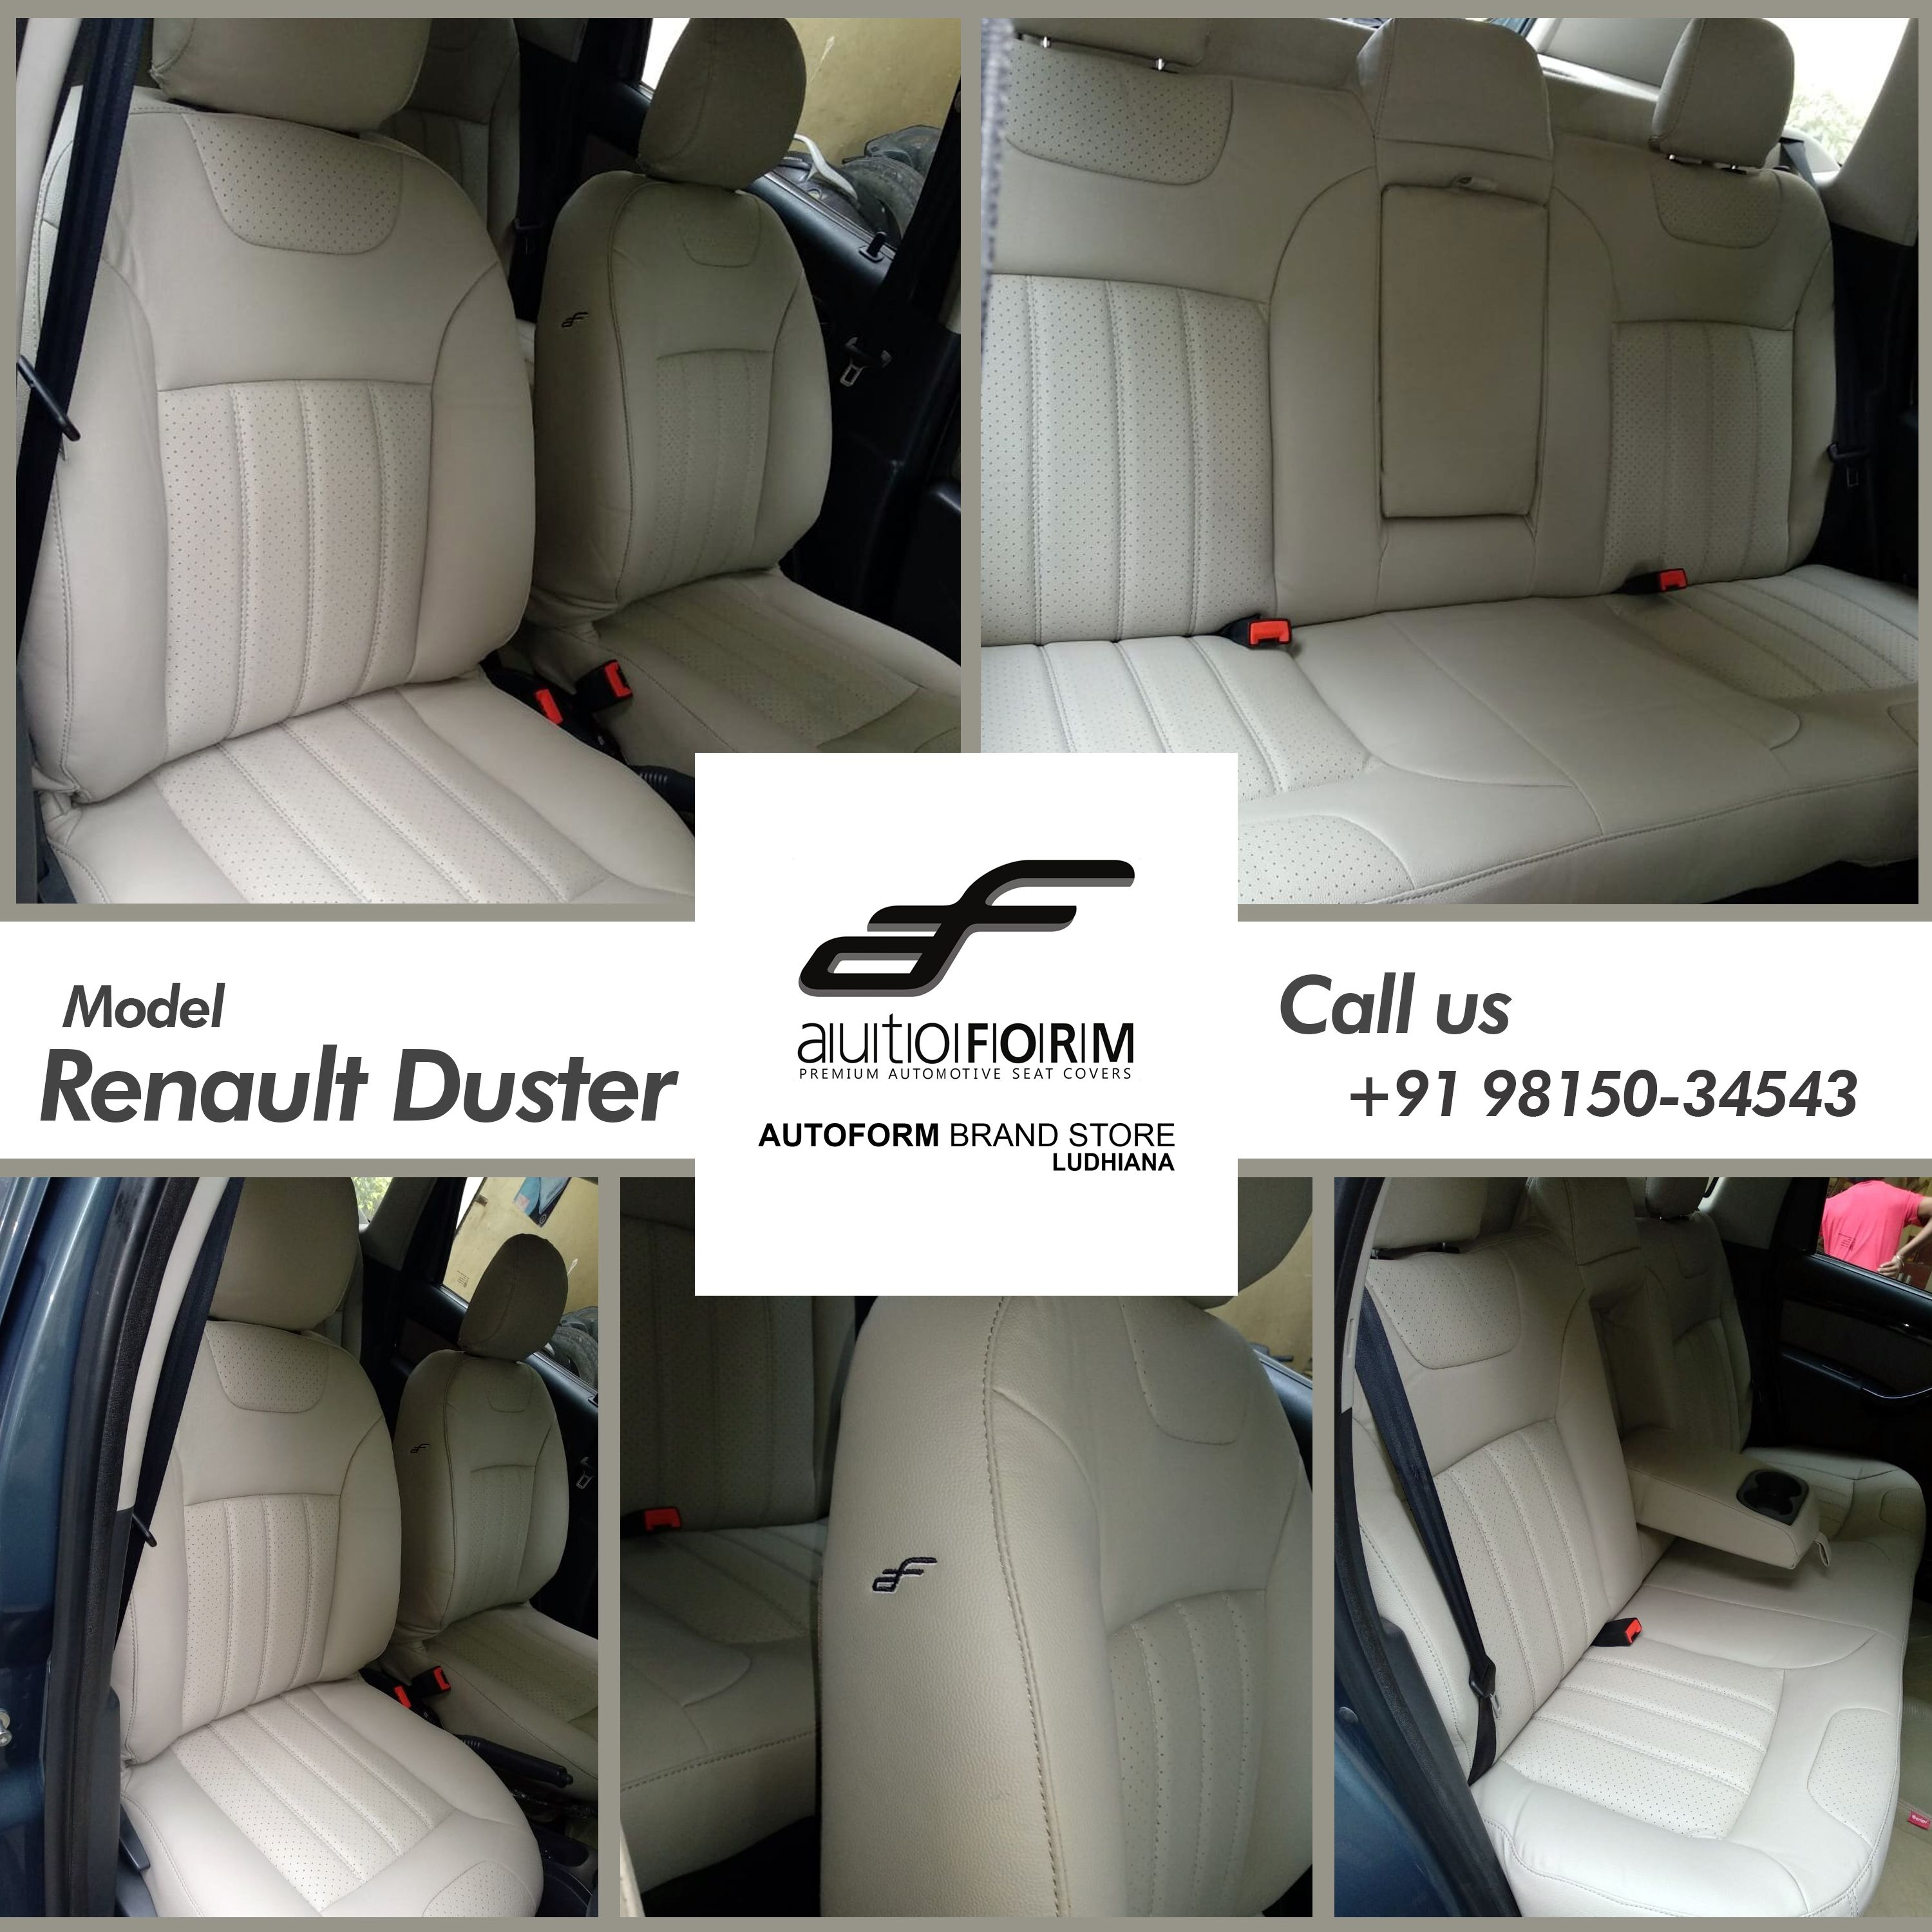 Renault Duster Is Ready To Thrill The Roads With Its Perfection Of Riviera Series In Light Grey With Perforation This Magnifi Renault Duster Car Seats Renault